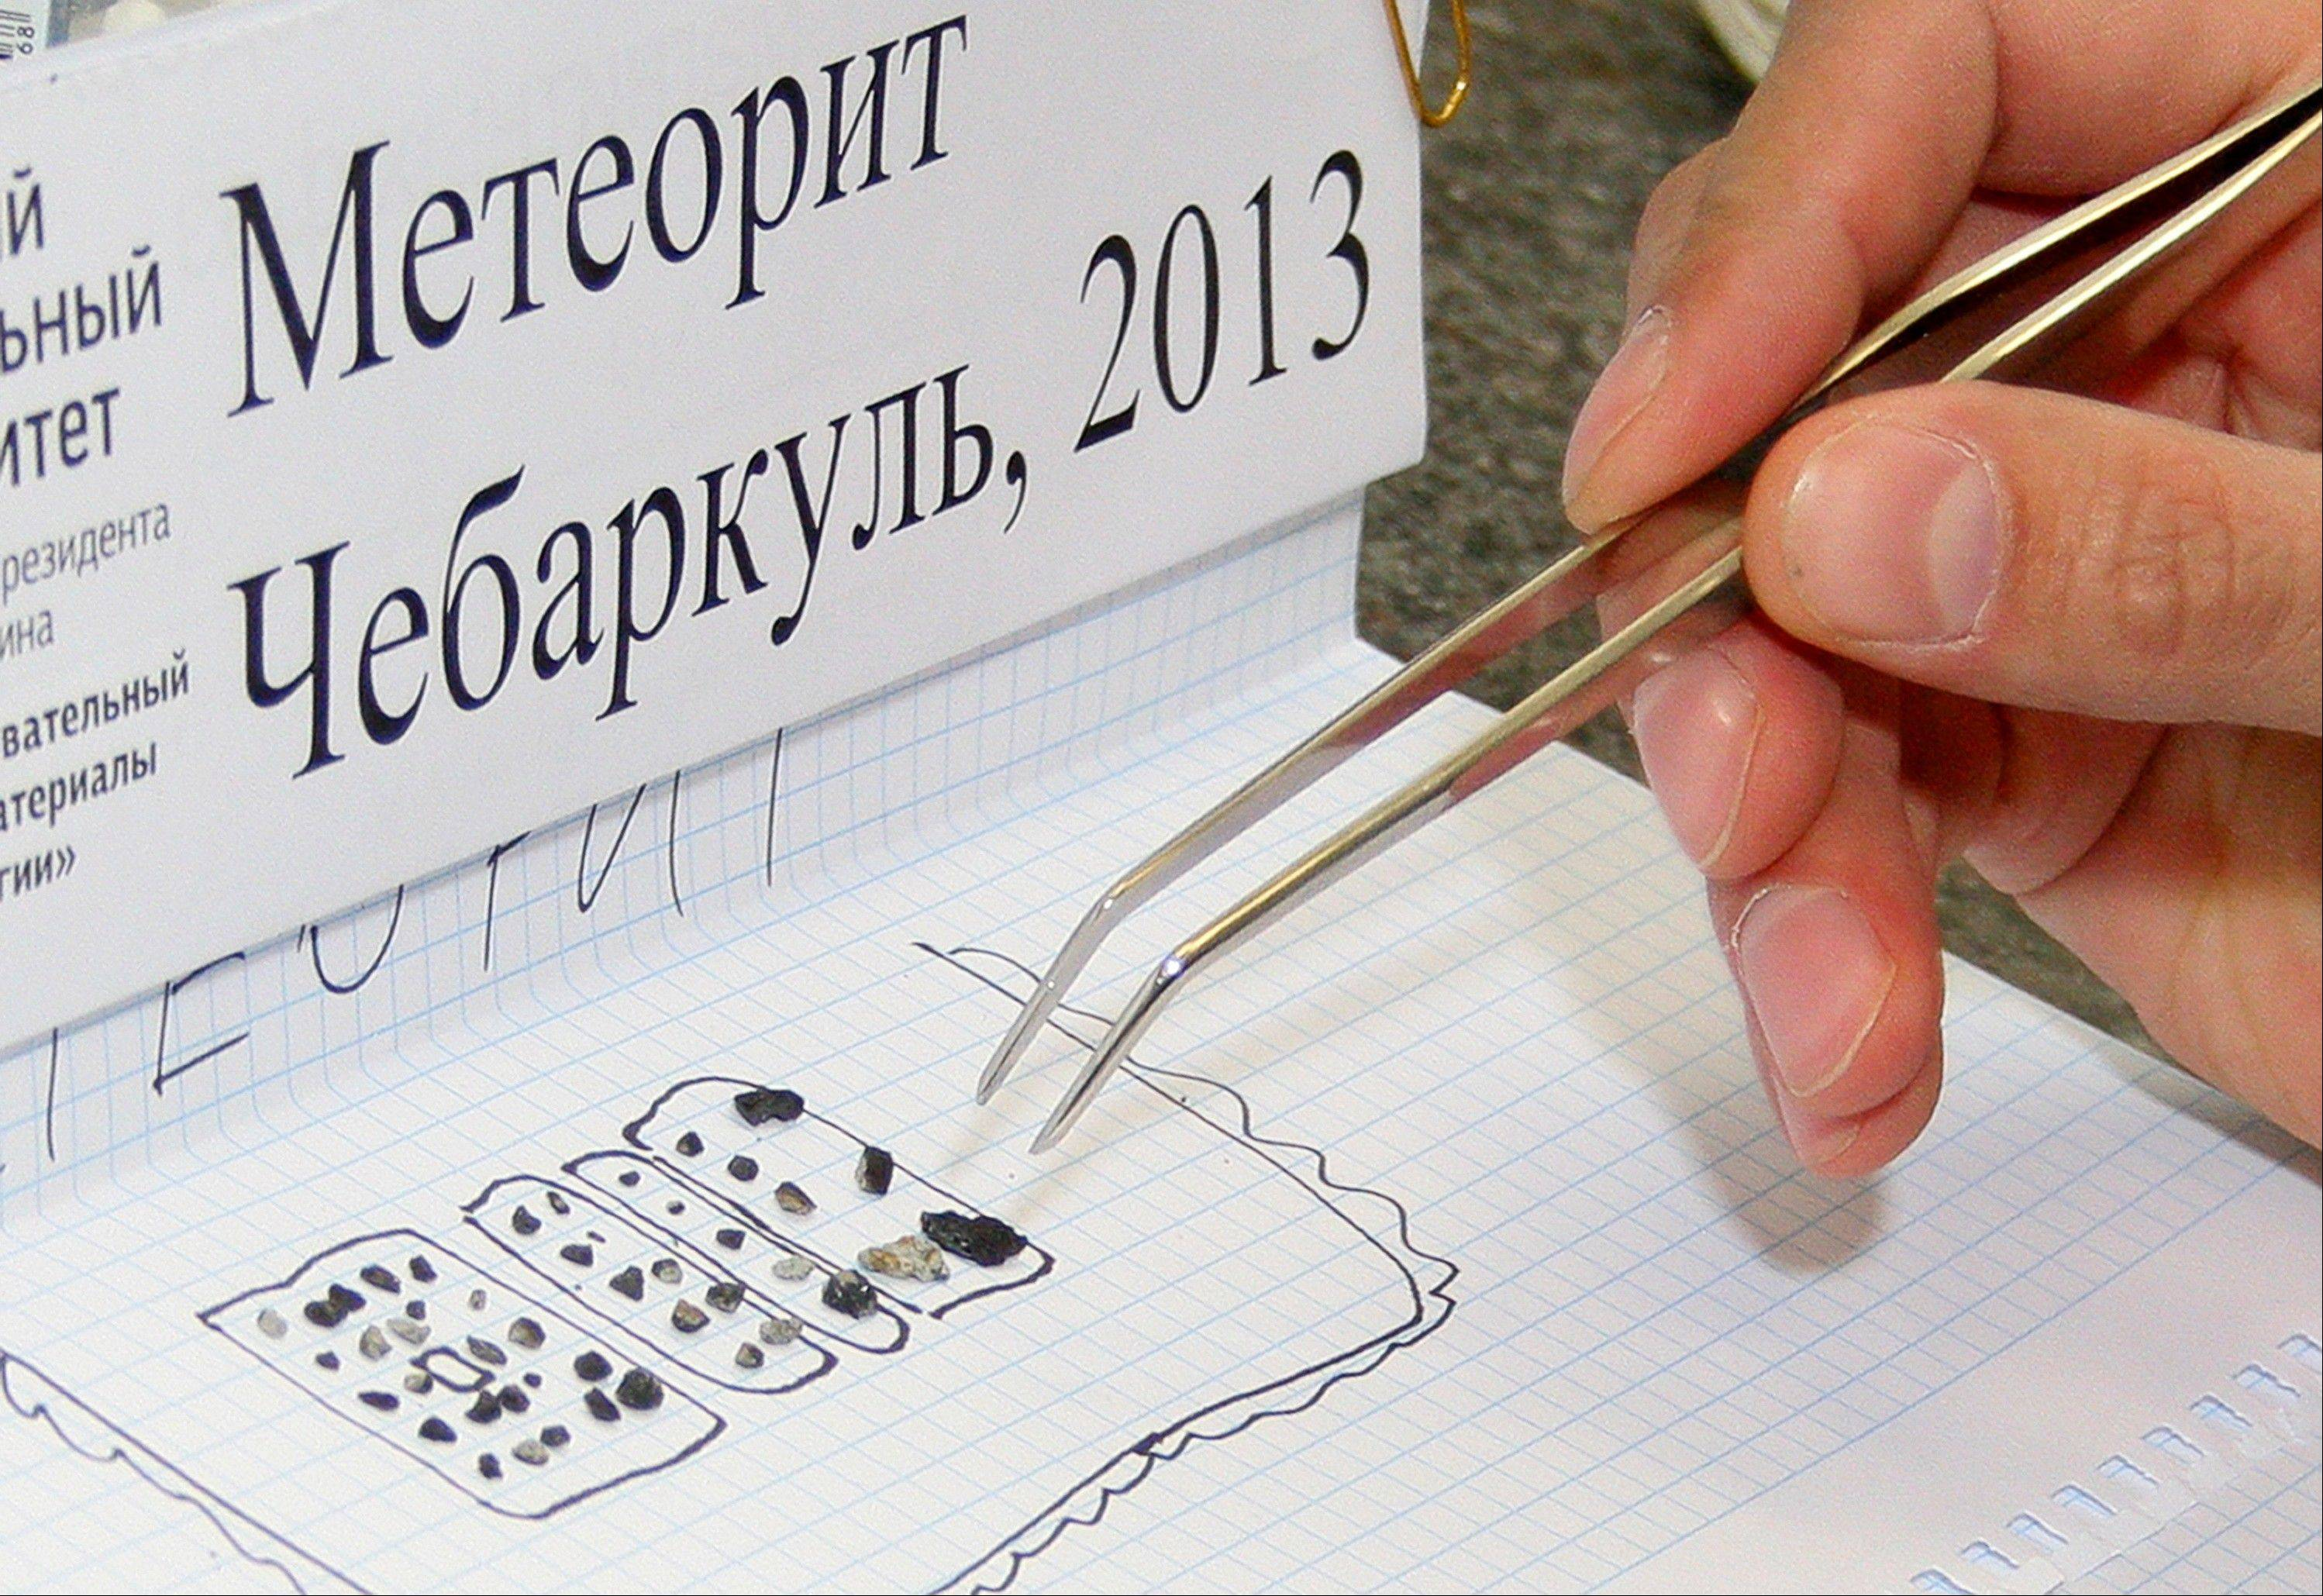 ASSOCIATED PRESS A researcher examines pieces of a meteorite in a laboratory in Yekaterinburg on Monday. Researchers have determined that the small stone-like pieces found near Lake Cherbarkul in the Chelyabinsk region are pieces of the meteorite that exploded over the region Feb. 15.